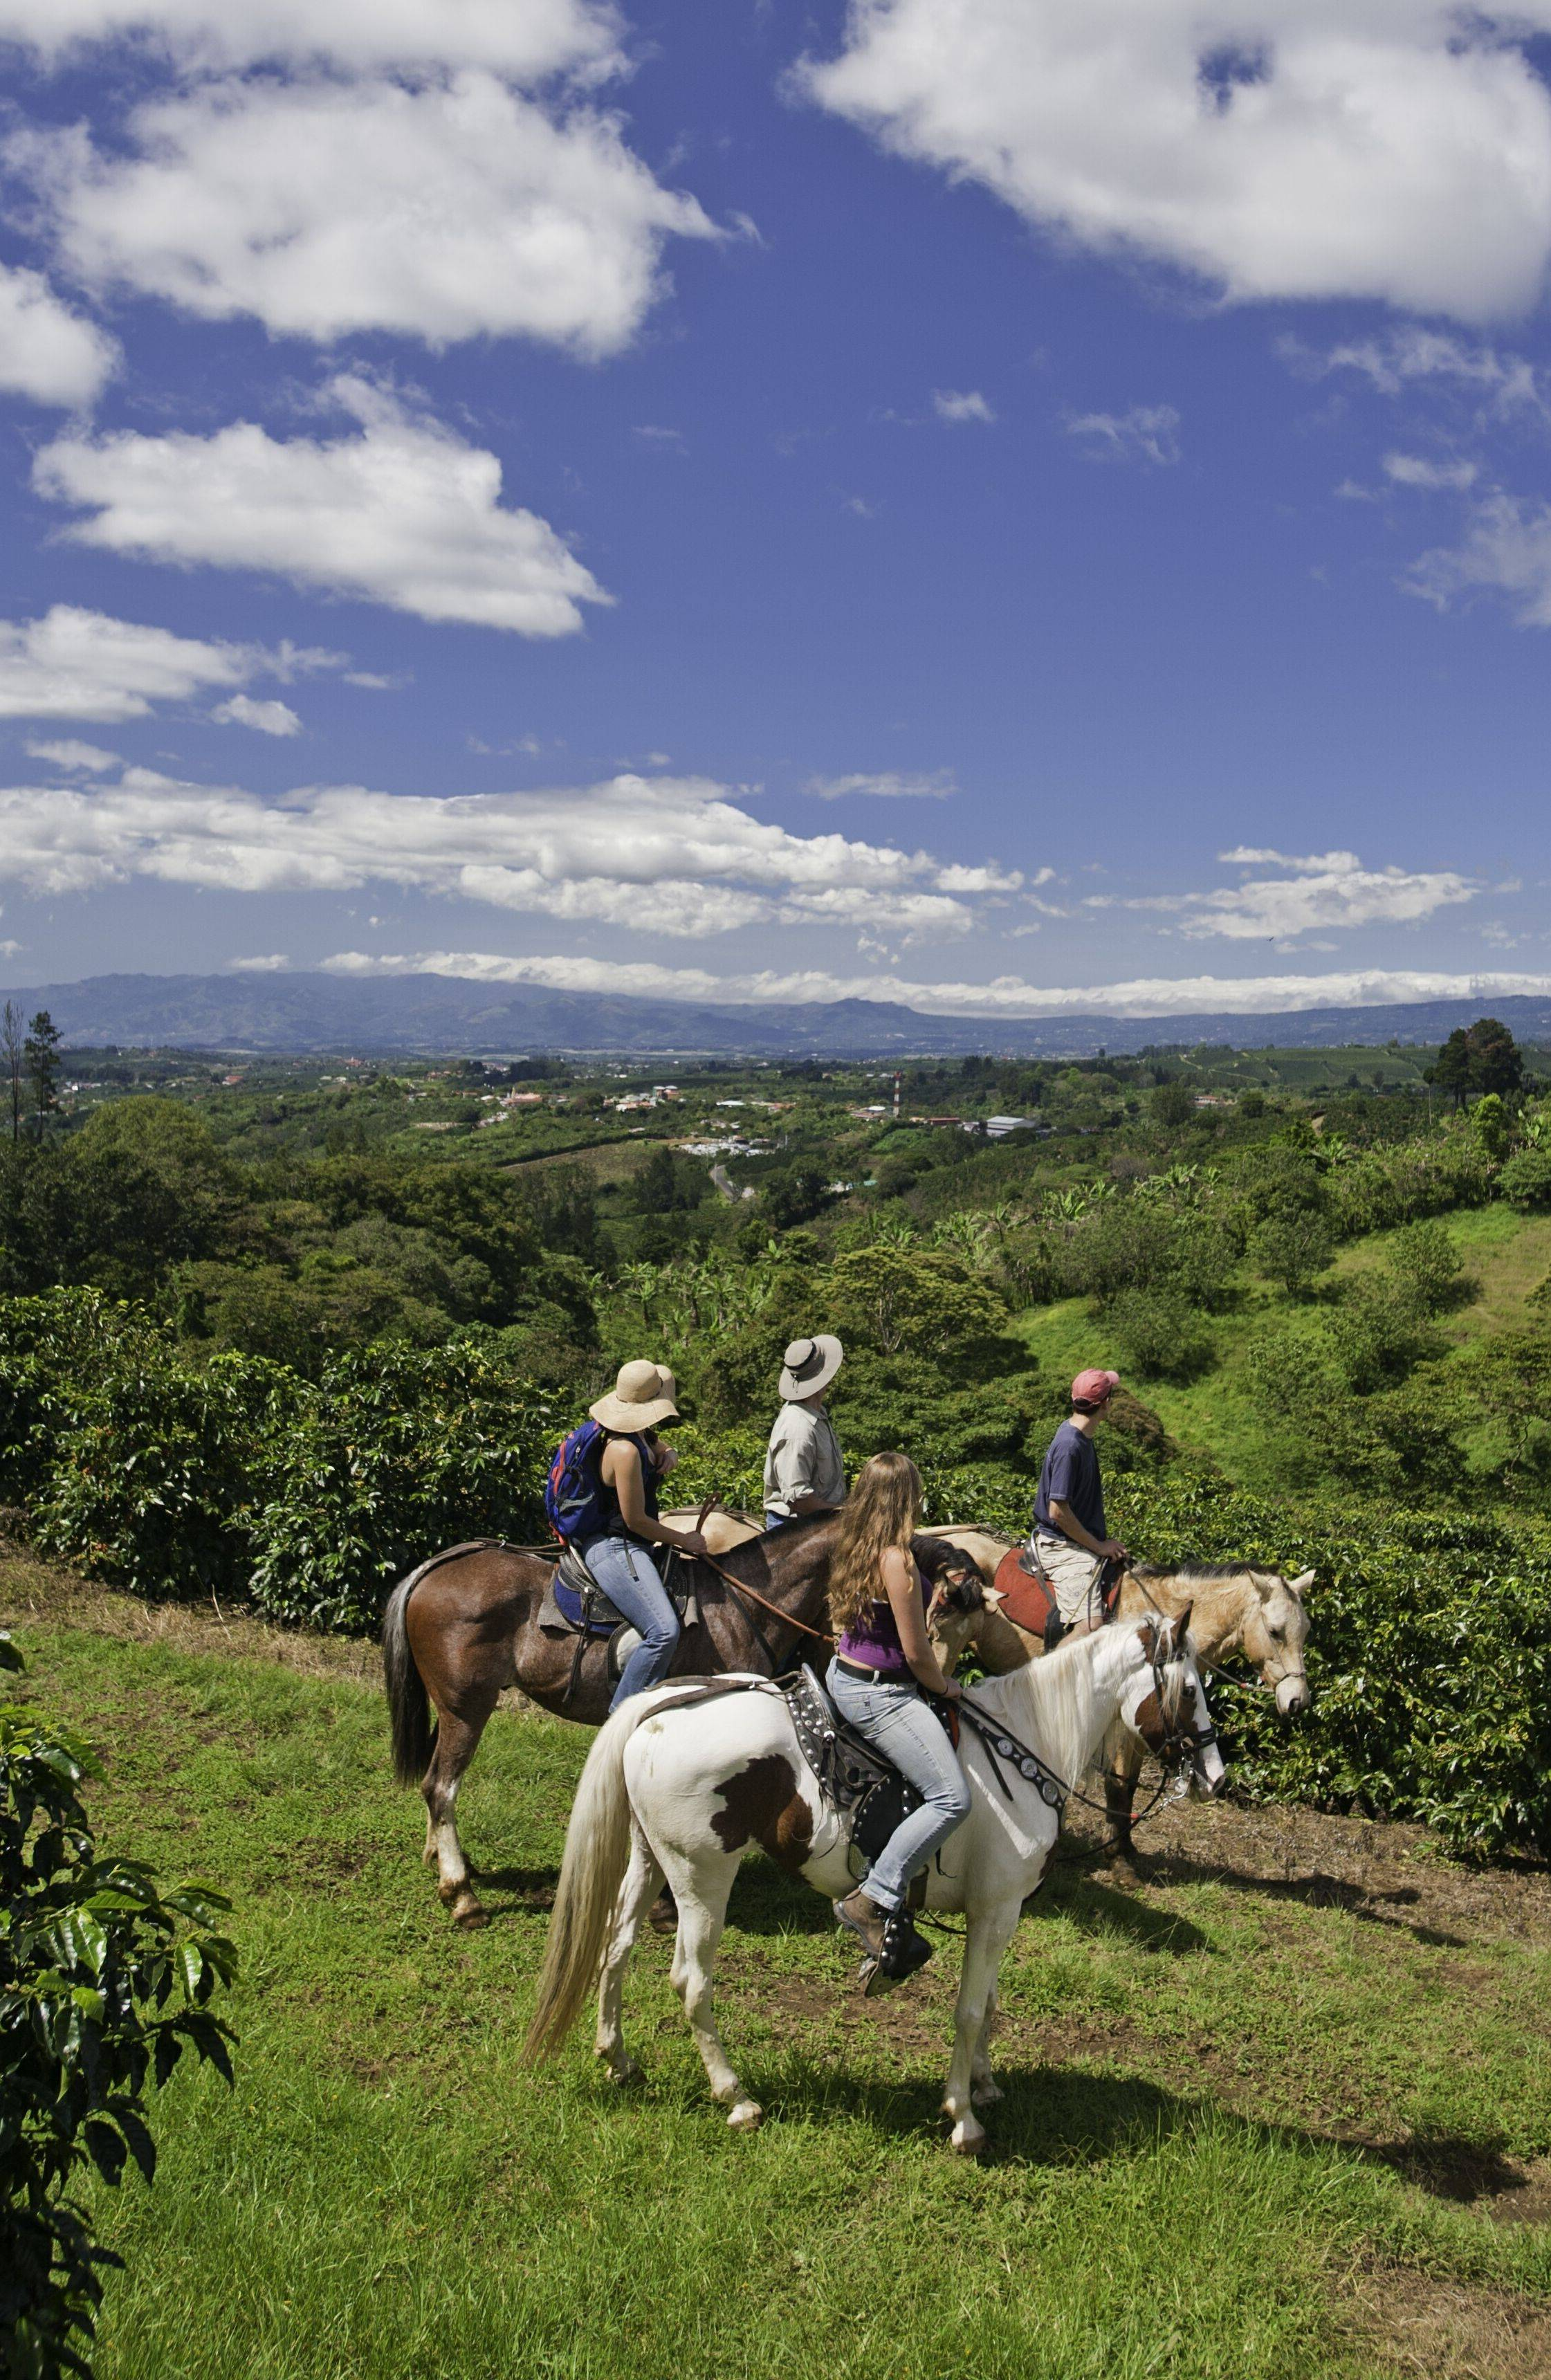 Horseback riding amid the misty cloud forests is just one of many activities at Finca Rosa Blanca Coffee Plantation and Inn in San Jose, Costa Rica.